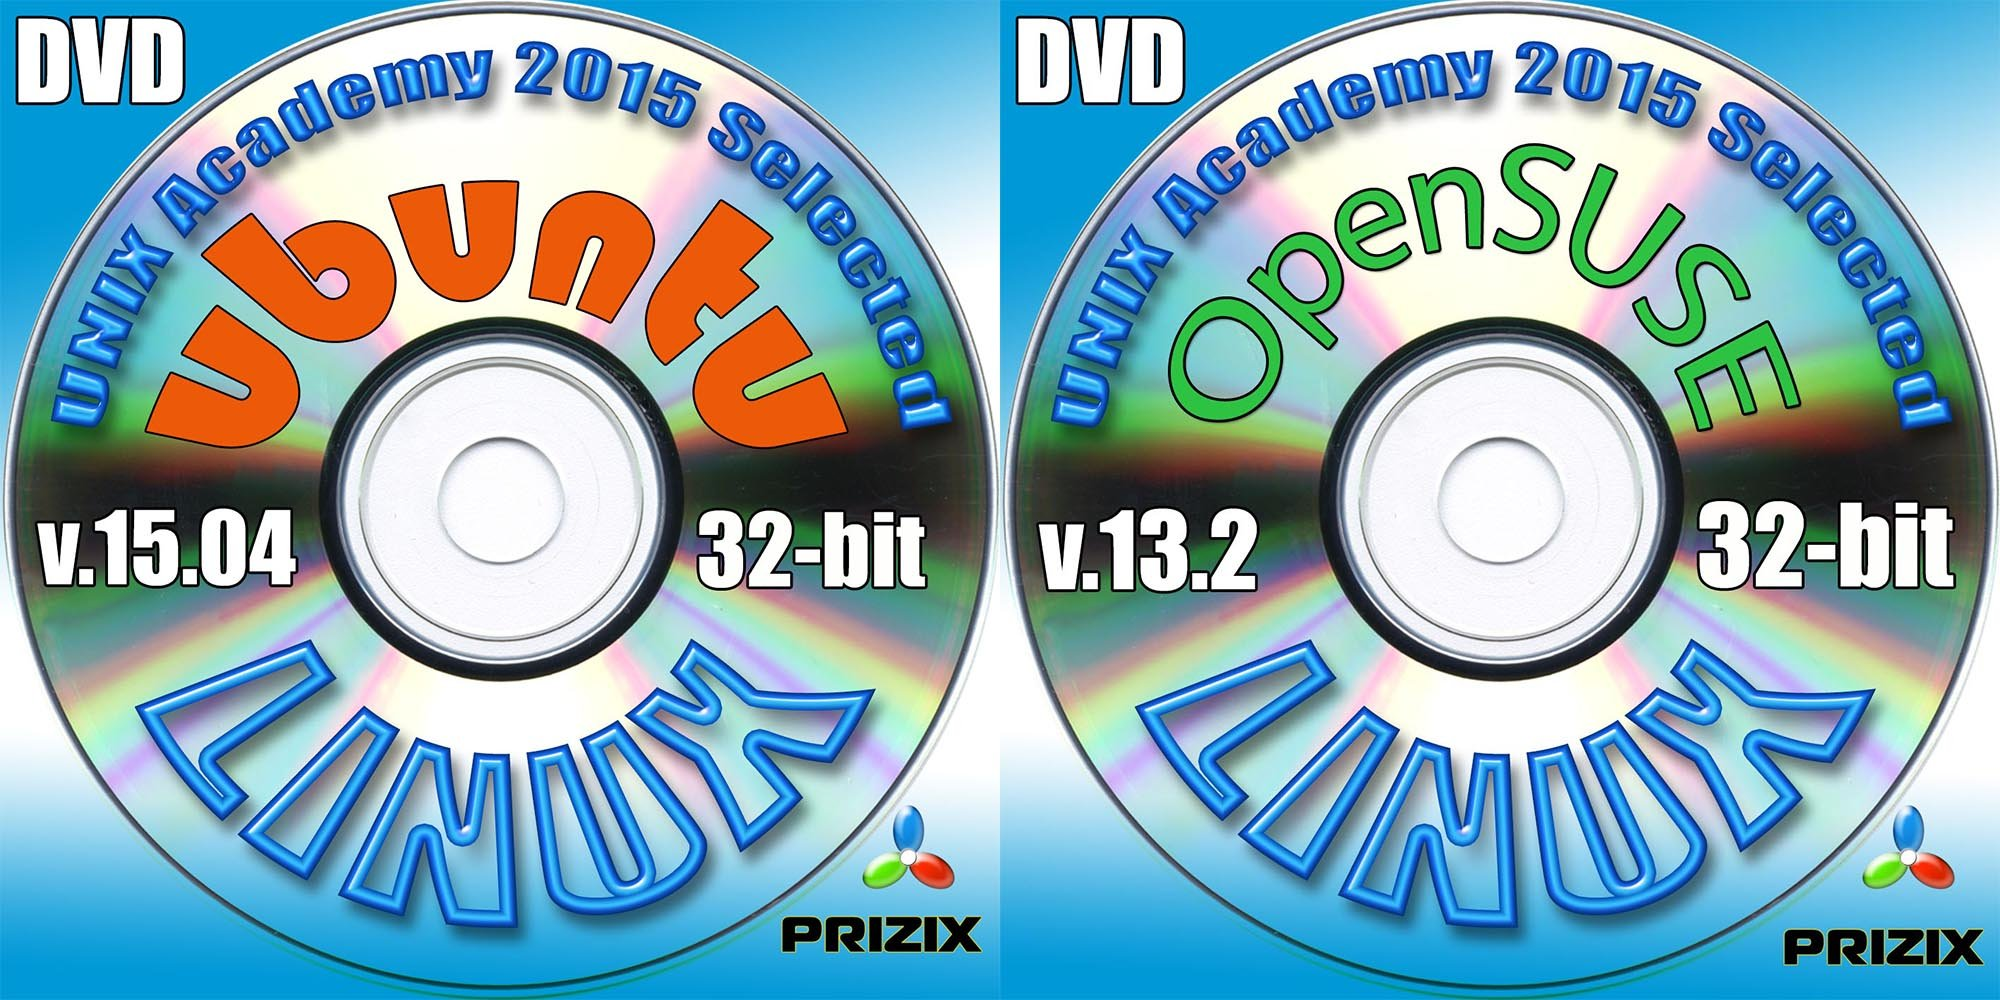 Ubuntu 15.04 and OpenSuse 13.2 Linux 2 DVD Set 32 bit Full Installation Includes Complimentary UNIX Academy Evaluation Exam by PRIZIX